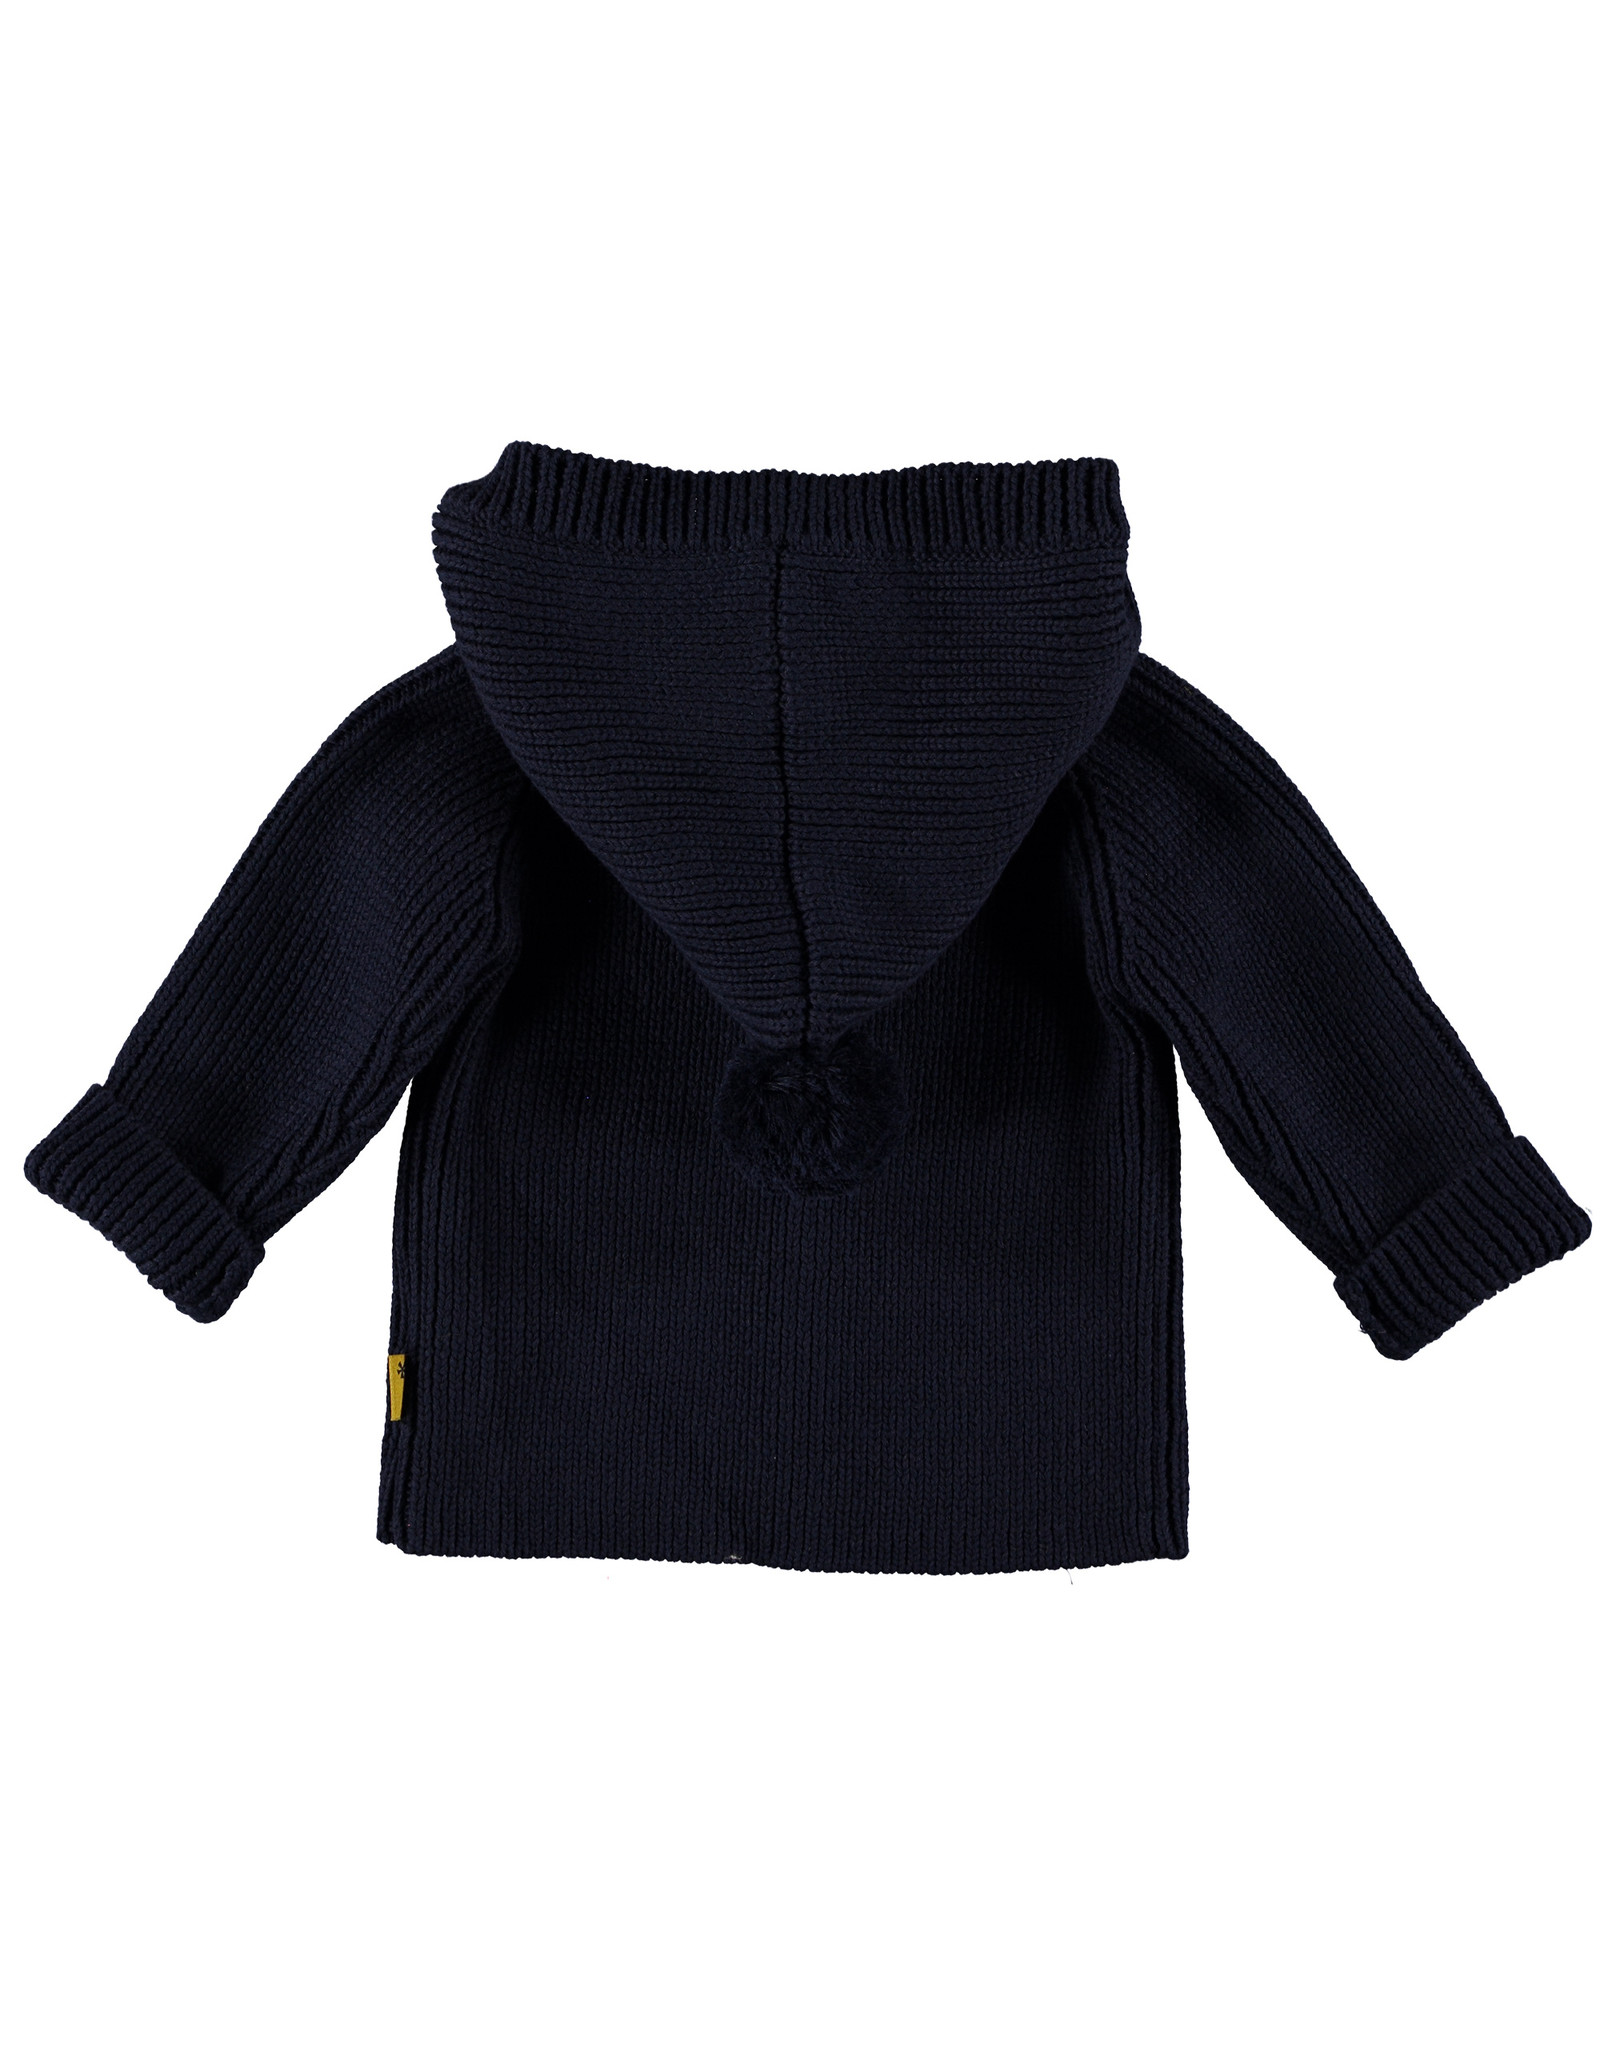 B.E.S.S. Cardigan Knitted Hood, Navy